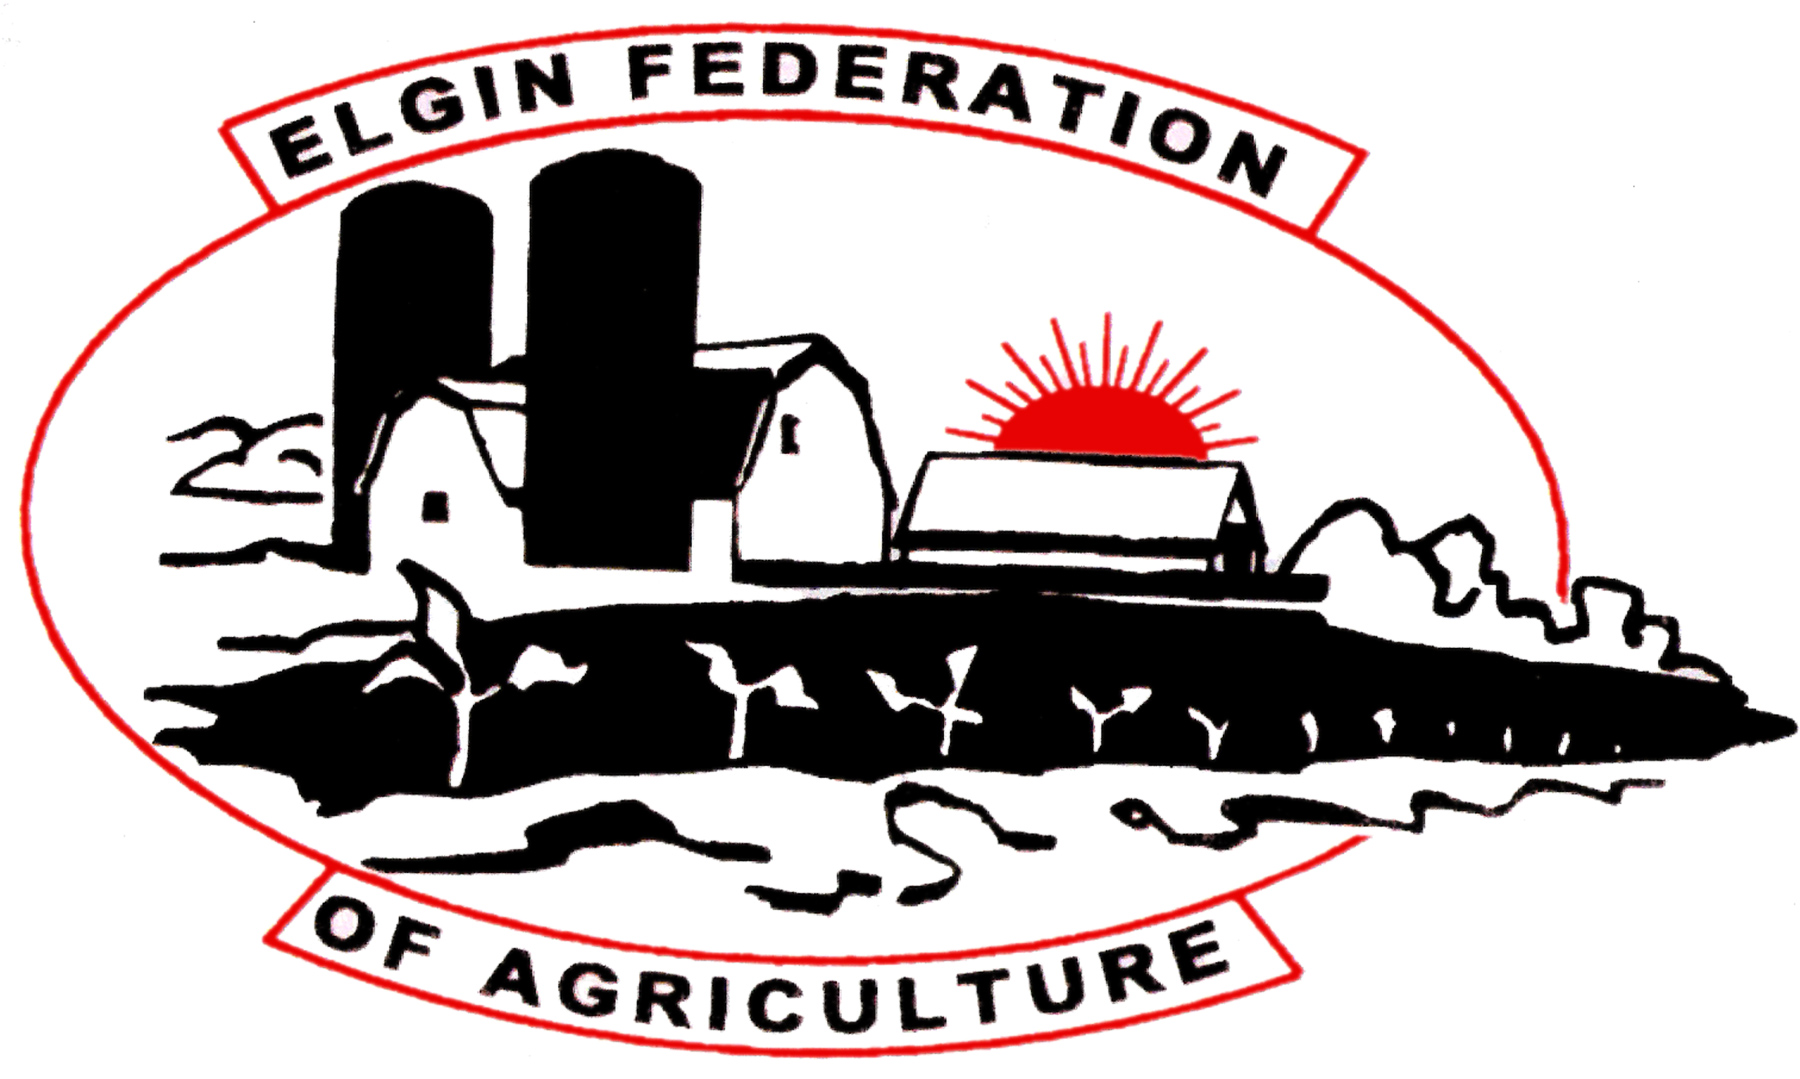 Elgin Federation of Agriculture